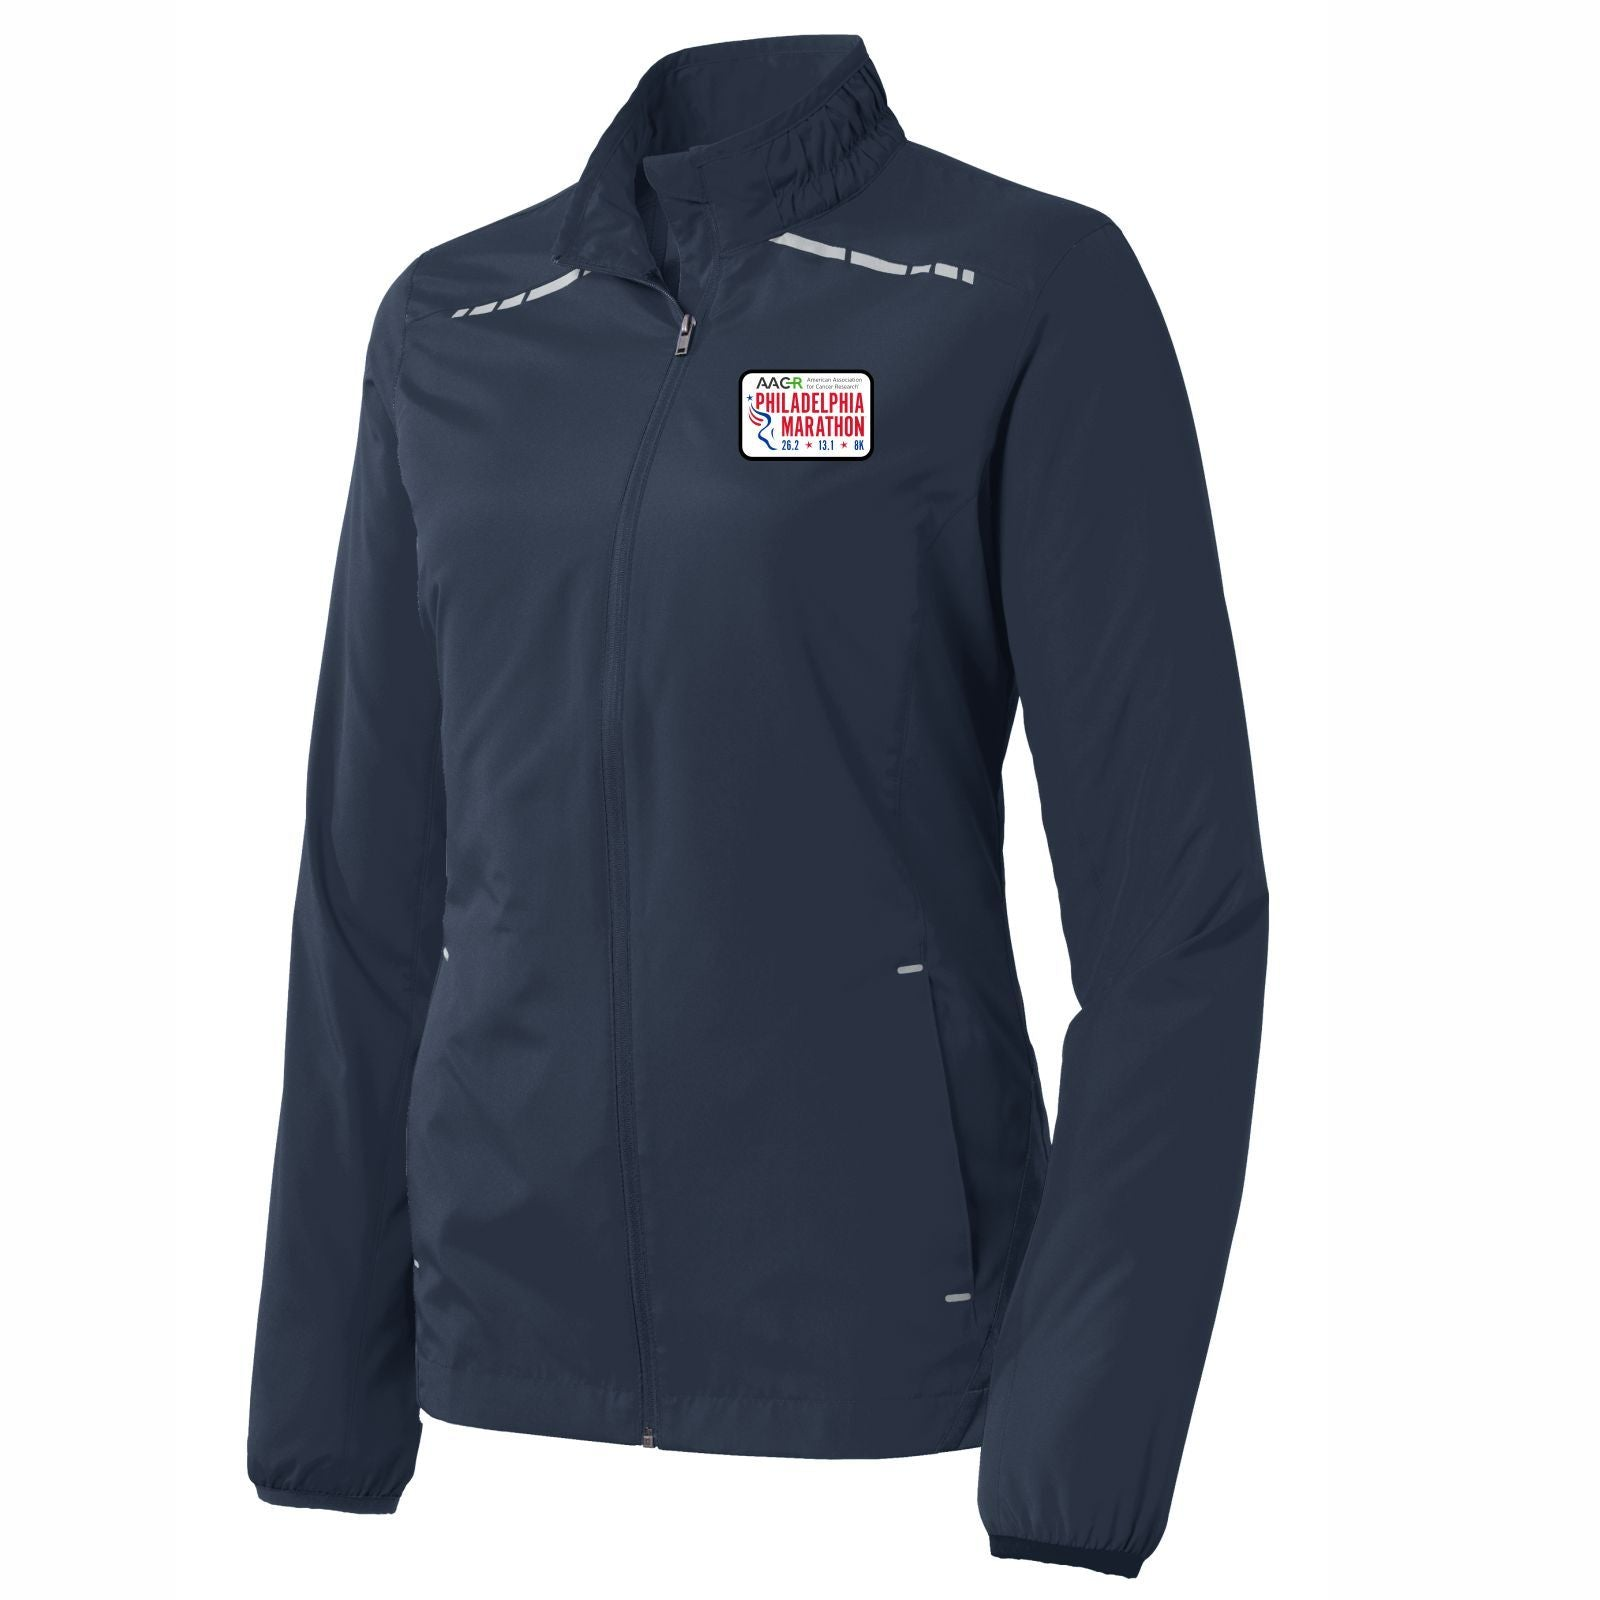 AACR Philadelphia Marathon 'Left Chest Embroidered' Patch design Women's Reflective Lightweight Full Zip Jacket - Dress Blue Navy